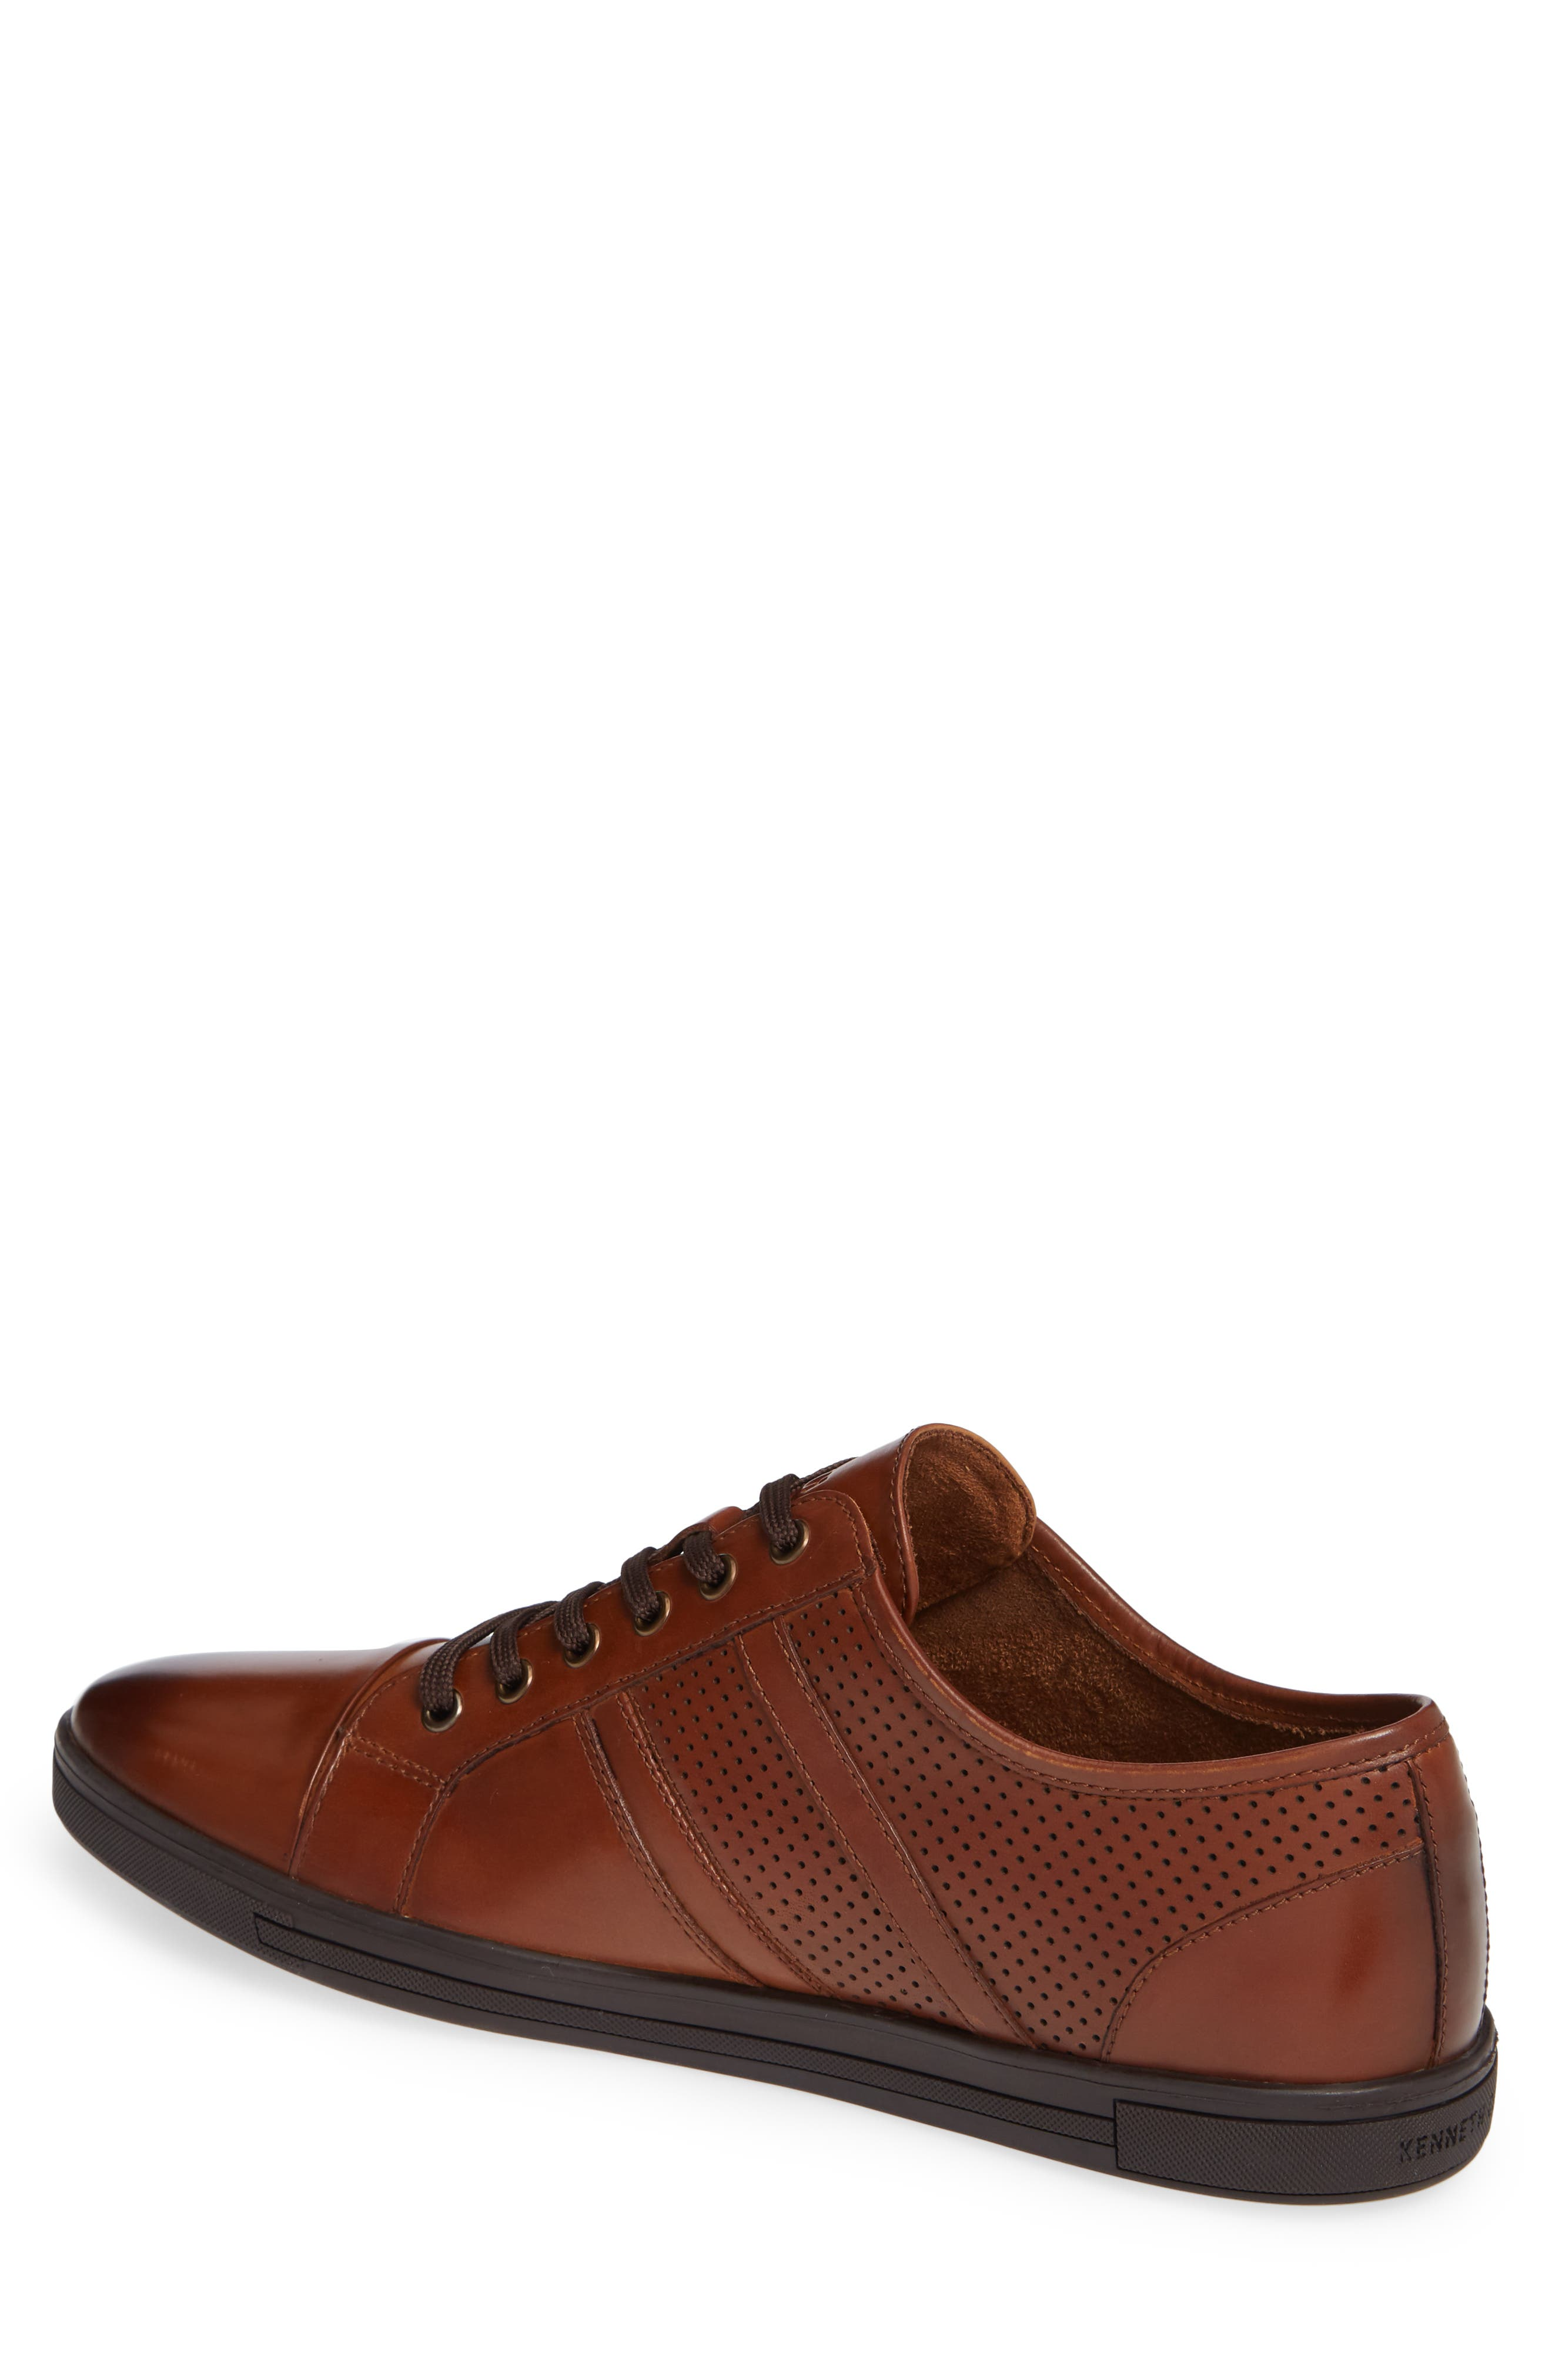 Initial Step Sneaker,                             Alternate thumbnail 2, color,                             COGNAC LEATHER